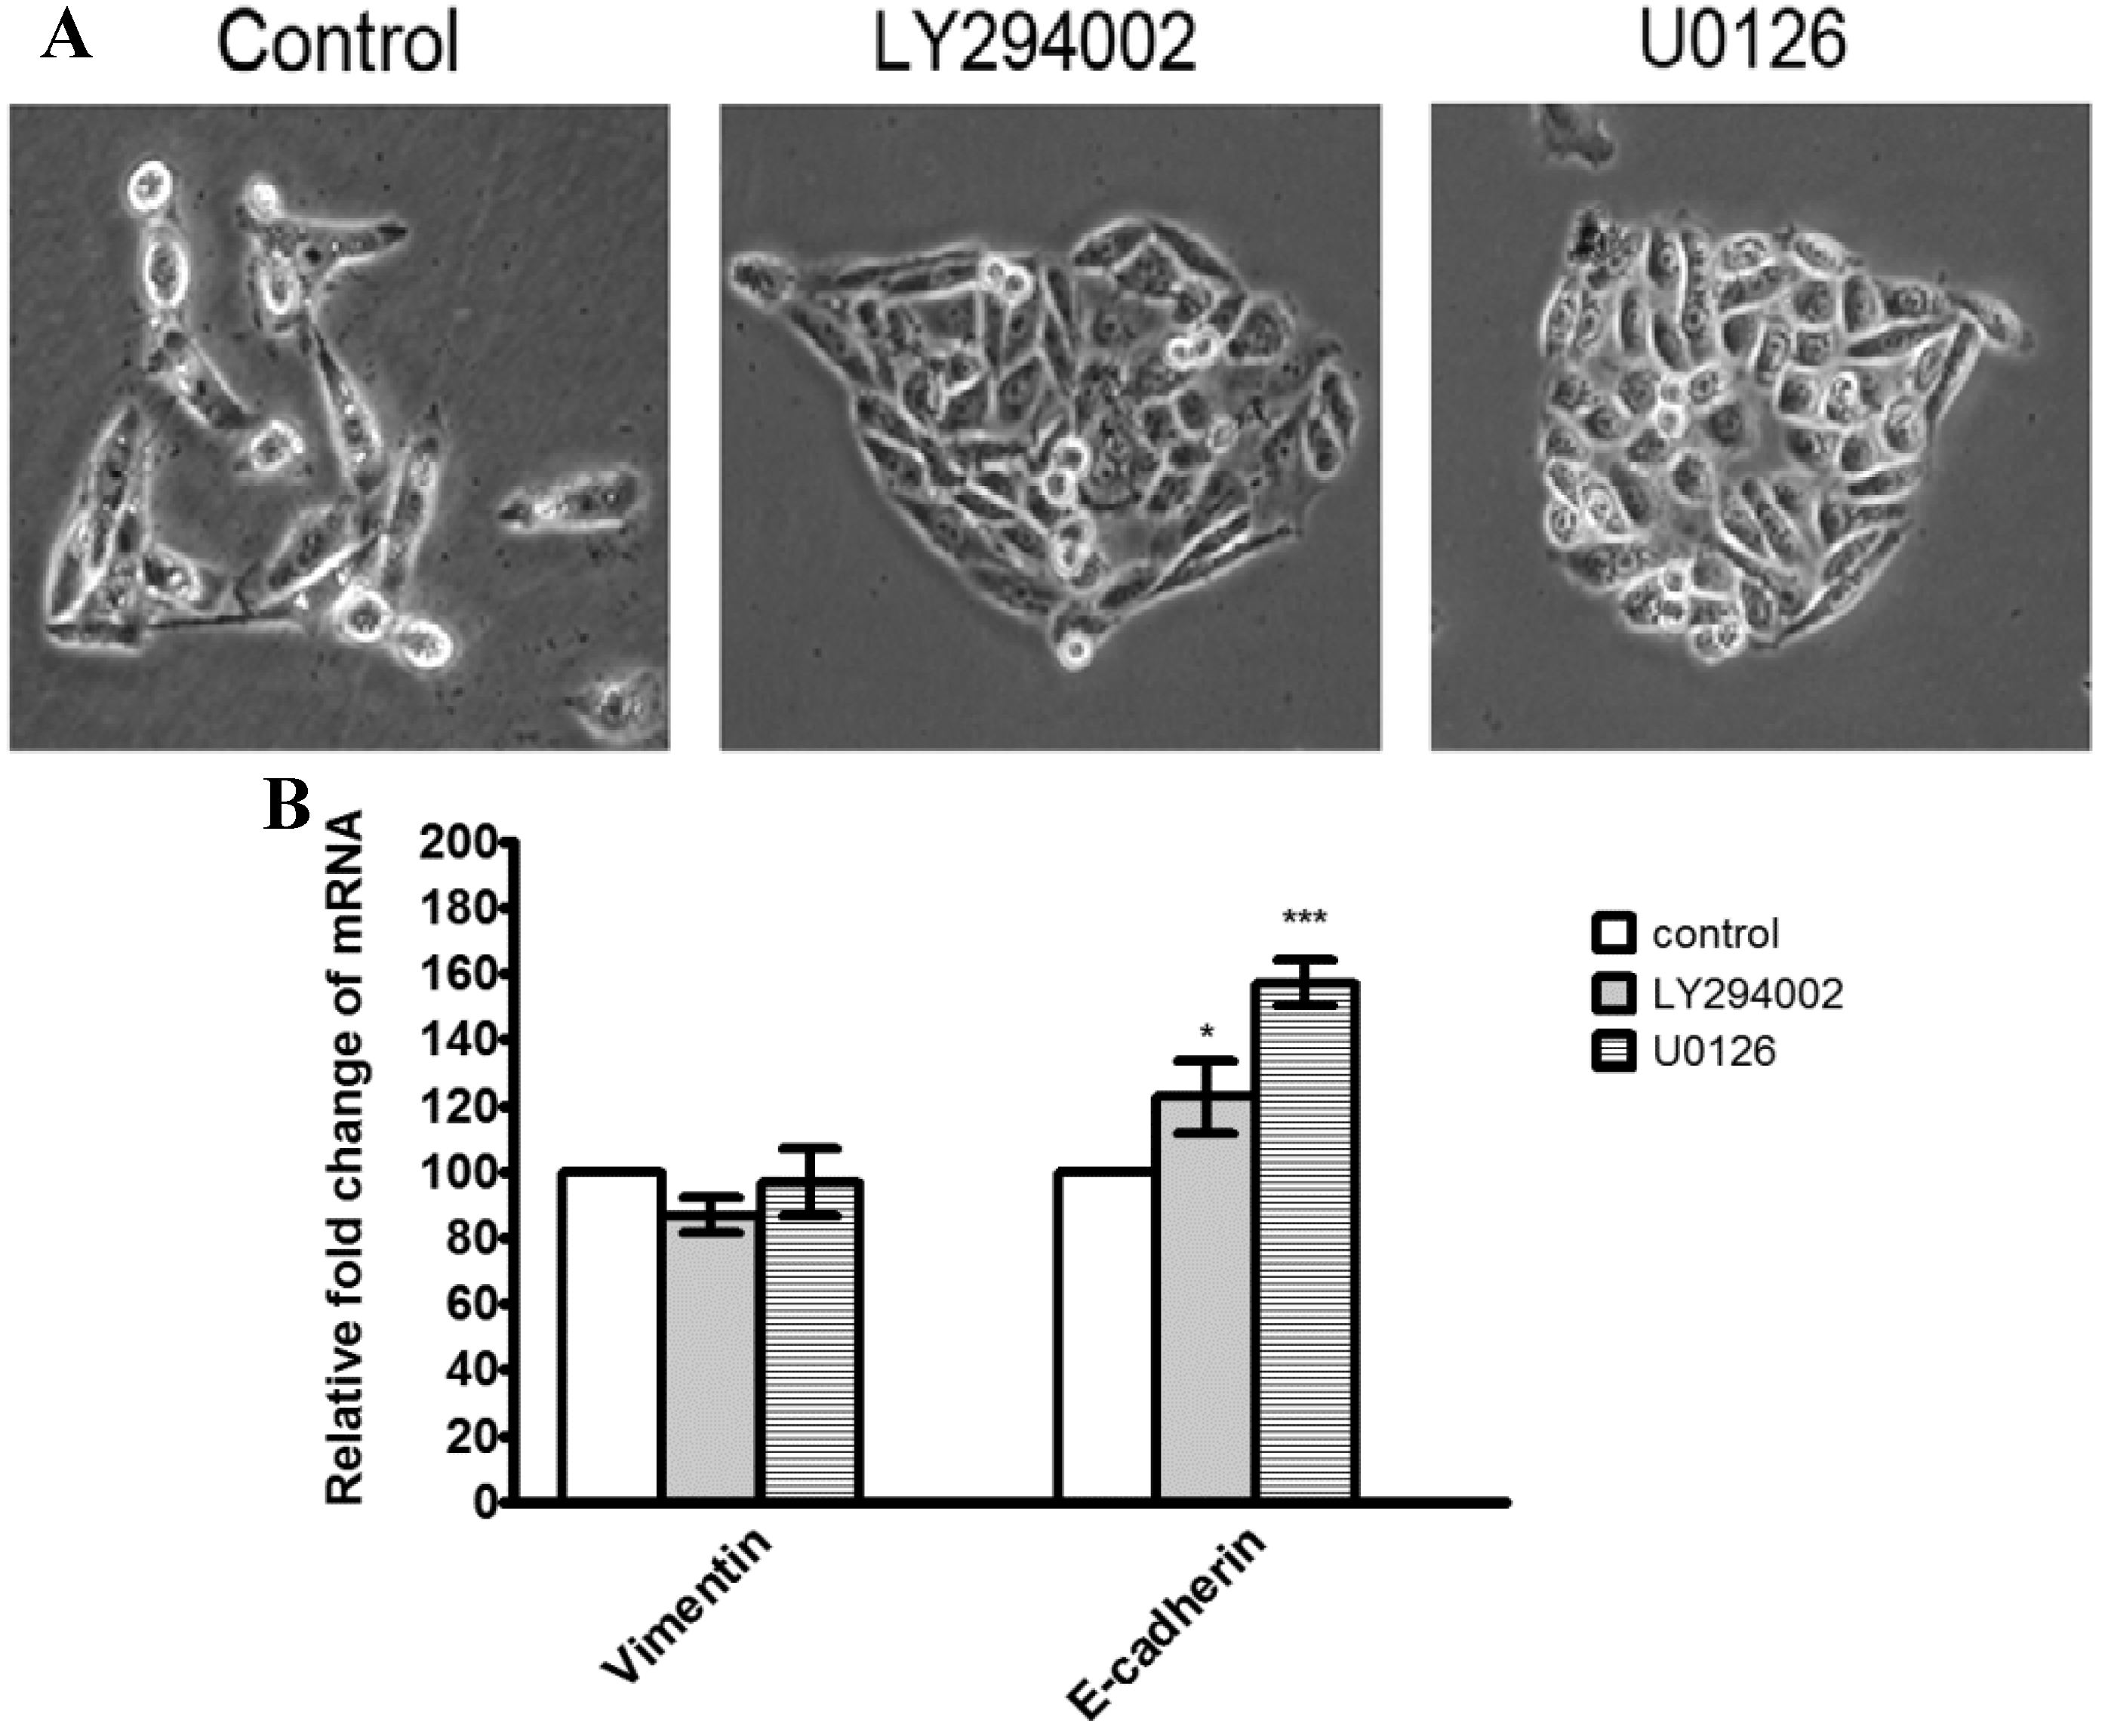 Inhibition of the PI3K/Akt pathway increases the